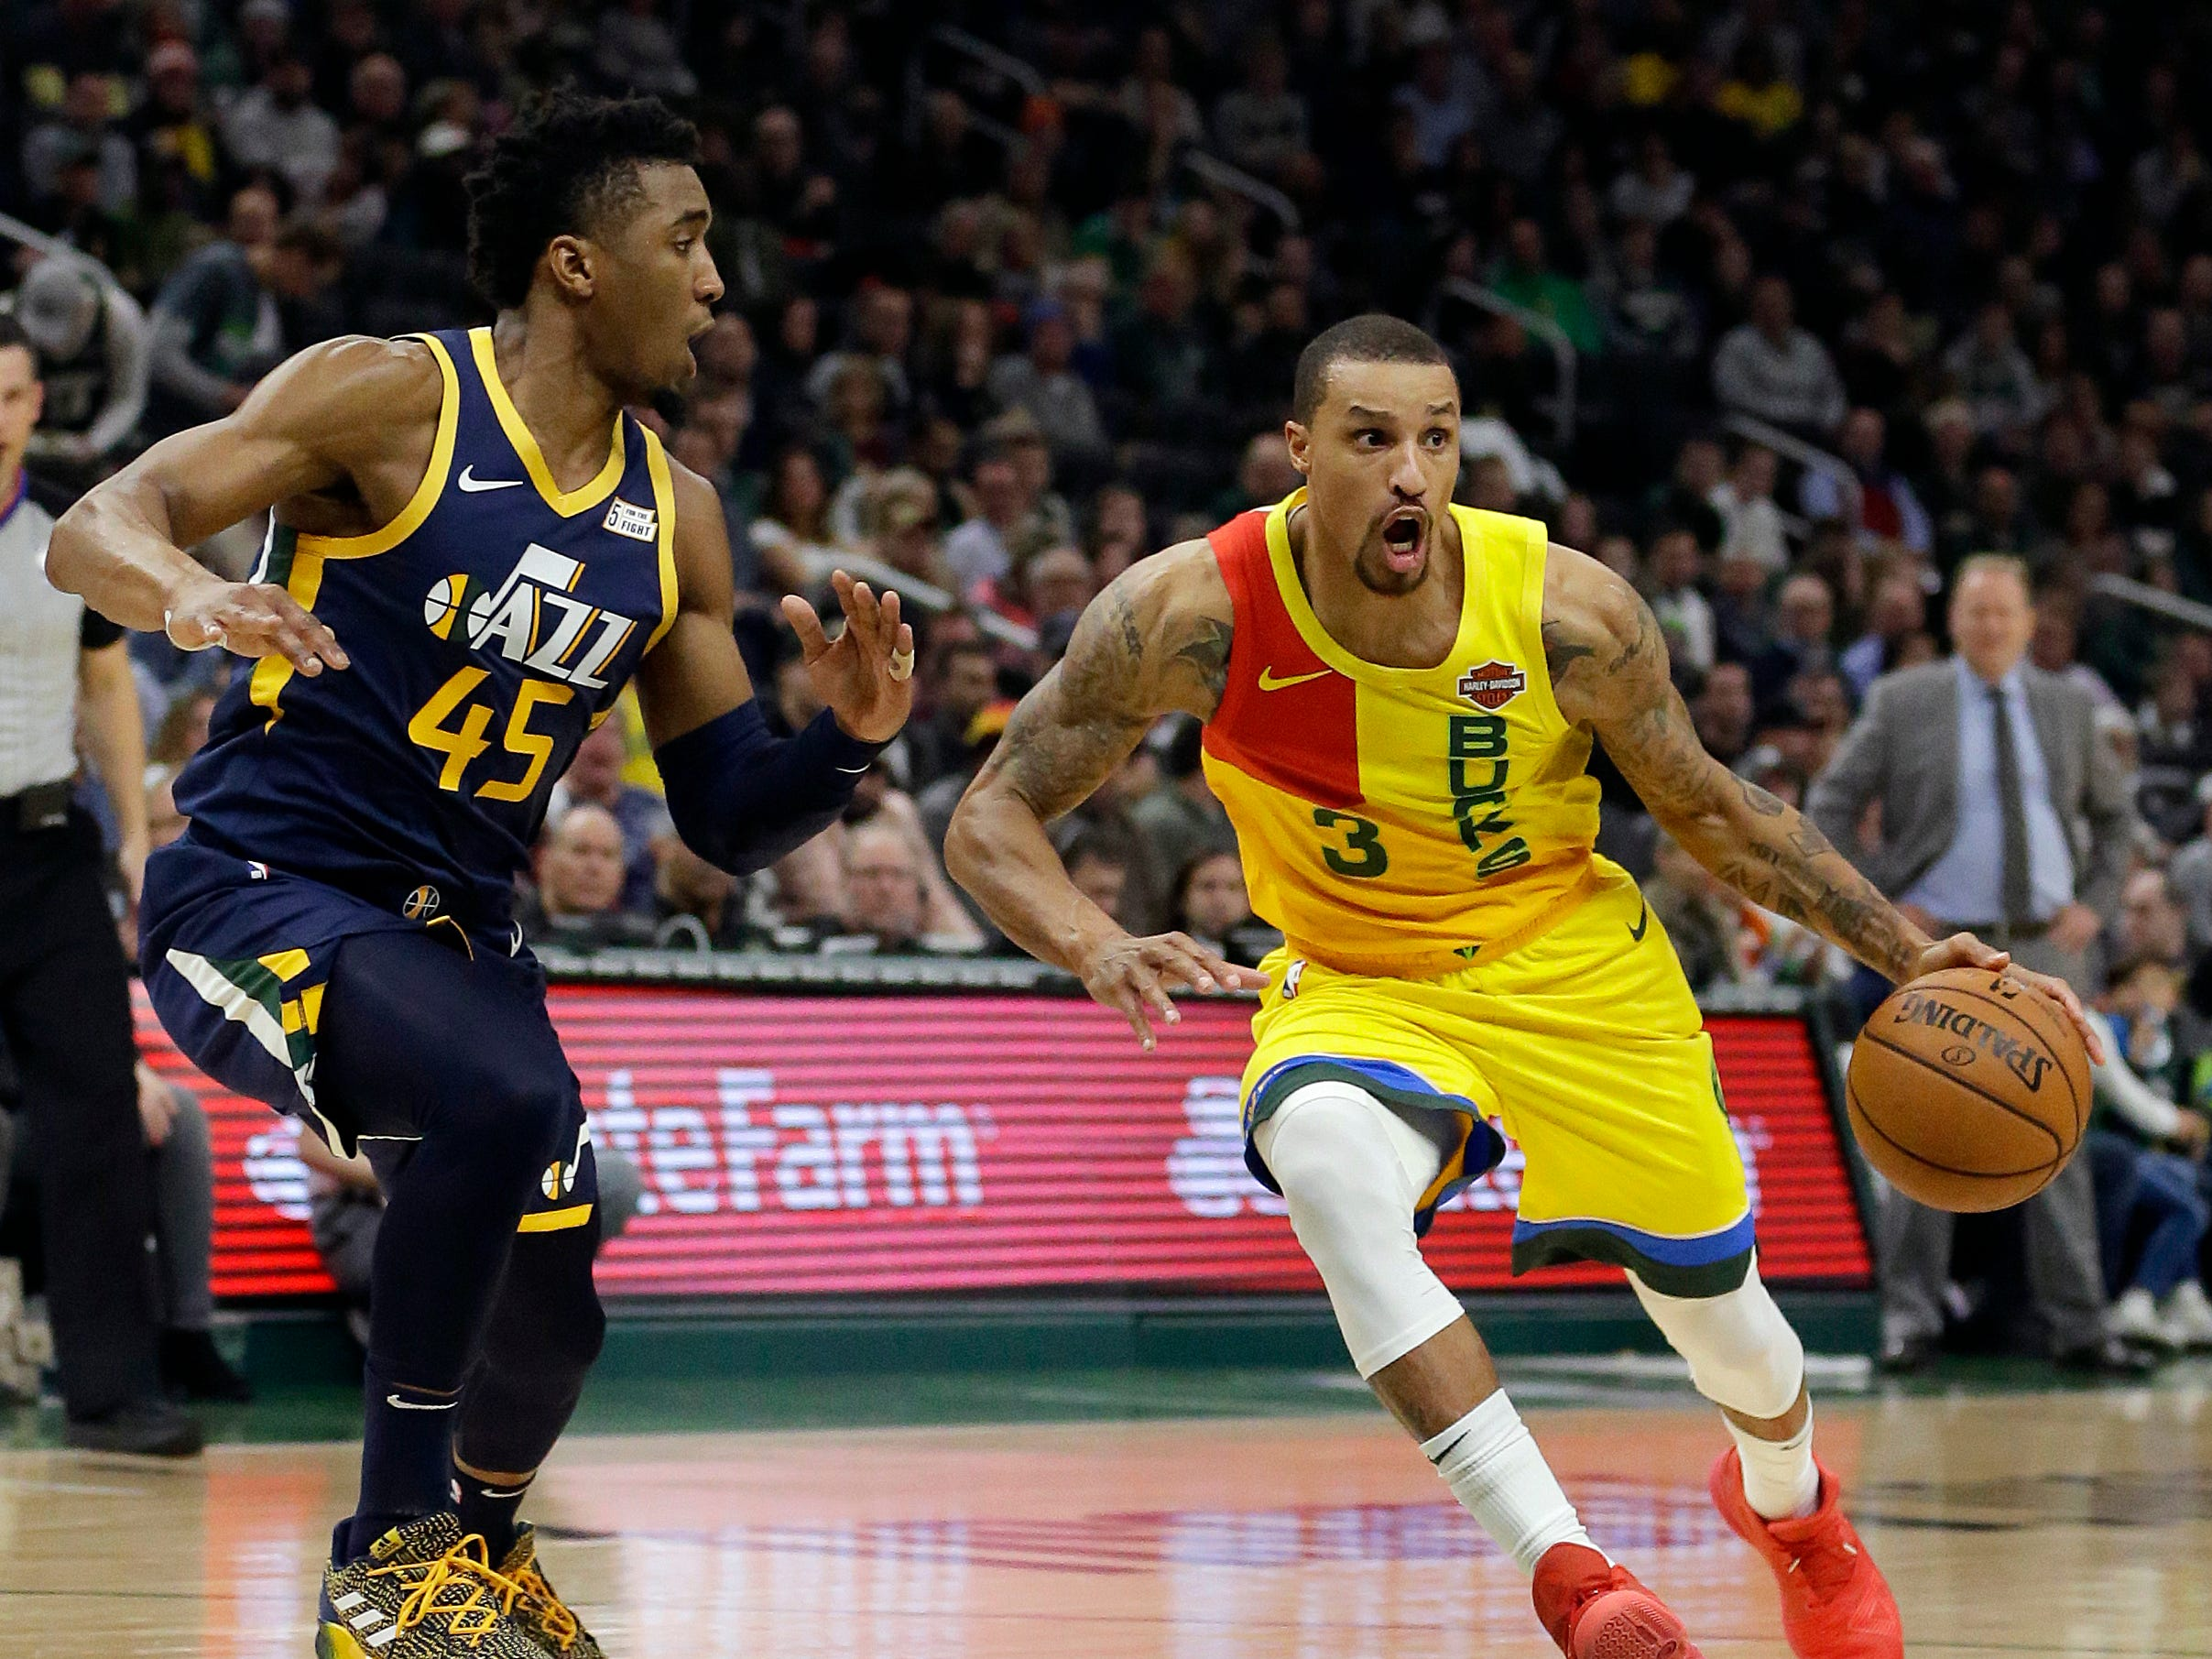 George Hill of the Bucks drives into the lane while being guarded by Donovan Mitchell of Utah on Monday night.